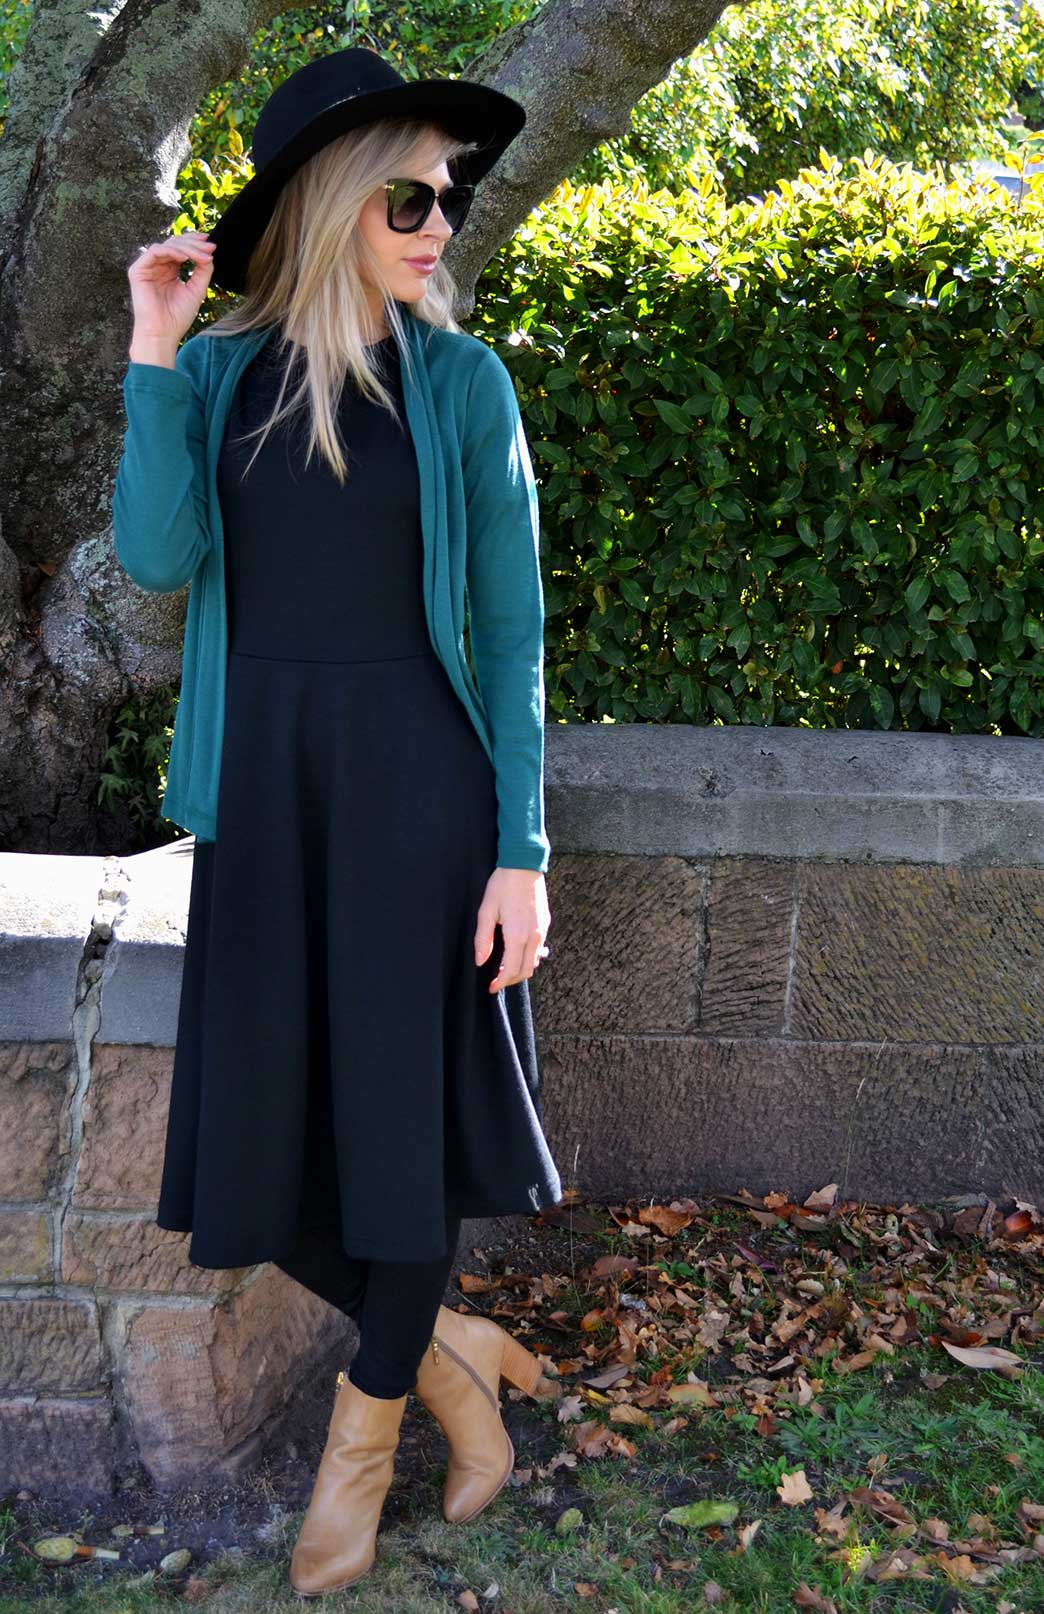 Mini Drape Cardigan - Women's Emerald Green Long Sleeve Merino Wool Cardigan - Smitten Merino Tasmania Australia